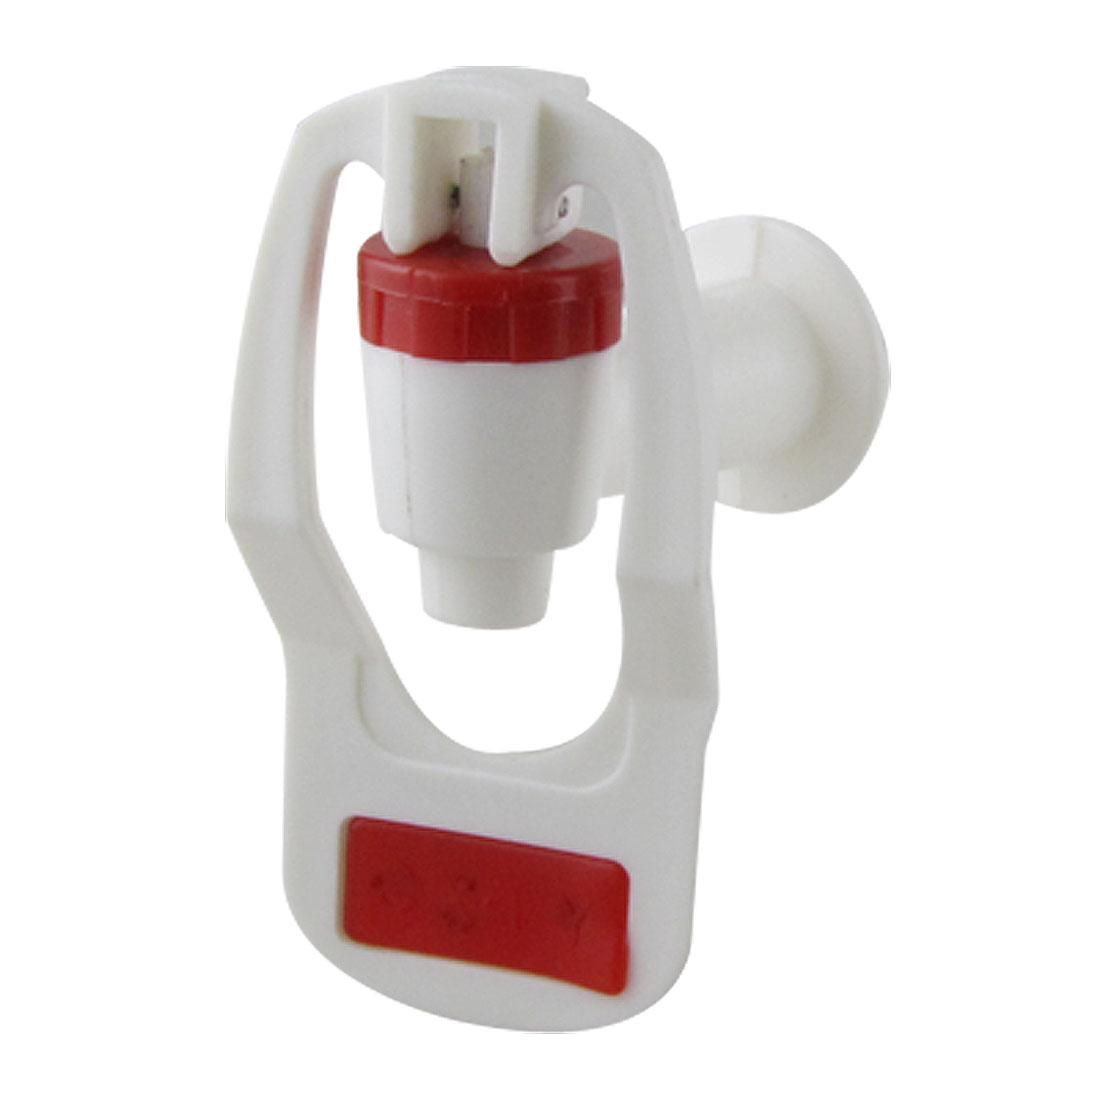 Water Dispenser Replacement Push Type White Red Plastic Tap Faucet